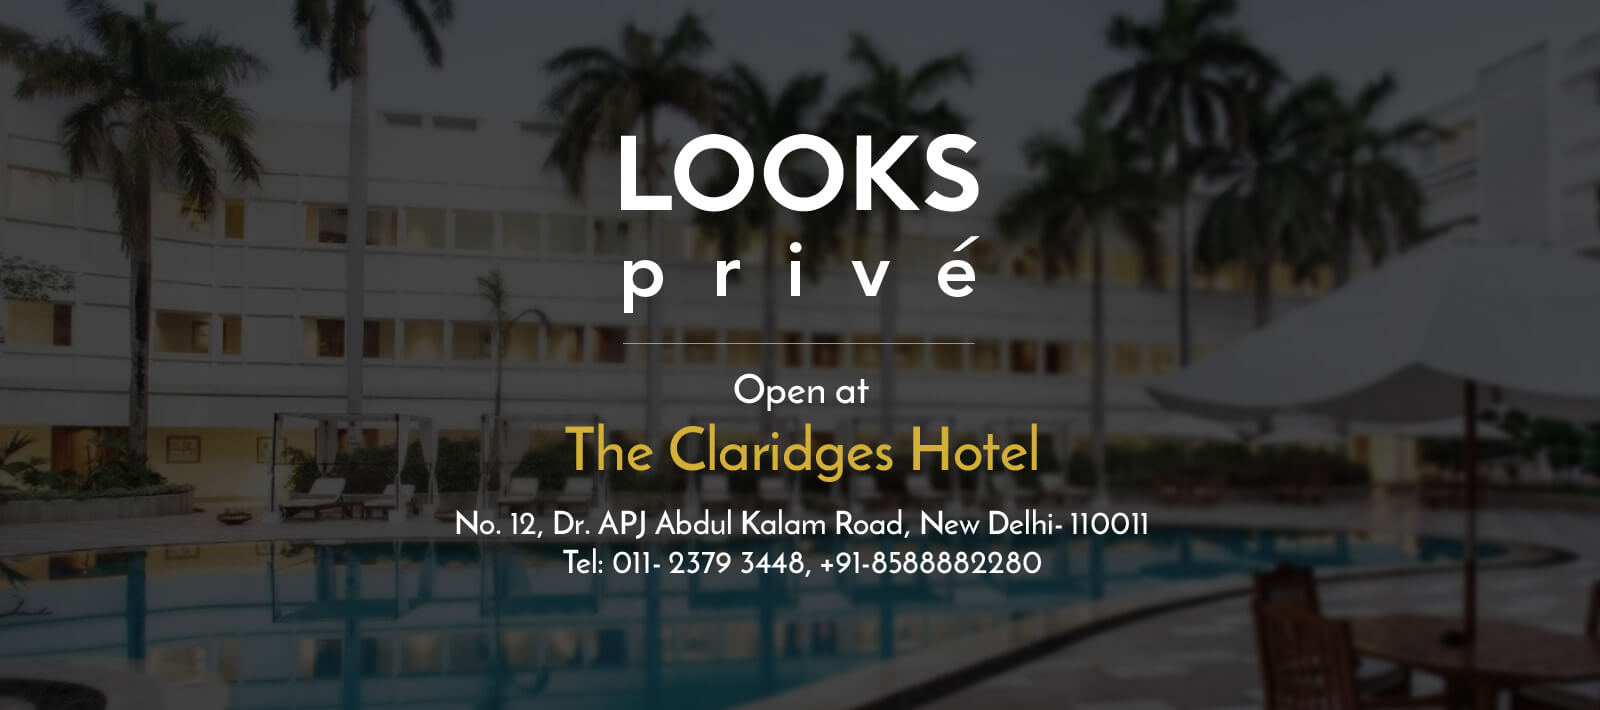 Promotional Banner of Looks Prive, the Claridges Hotel, New Delhi